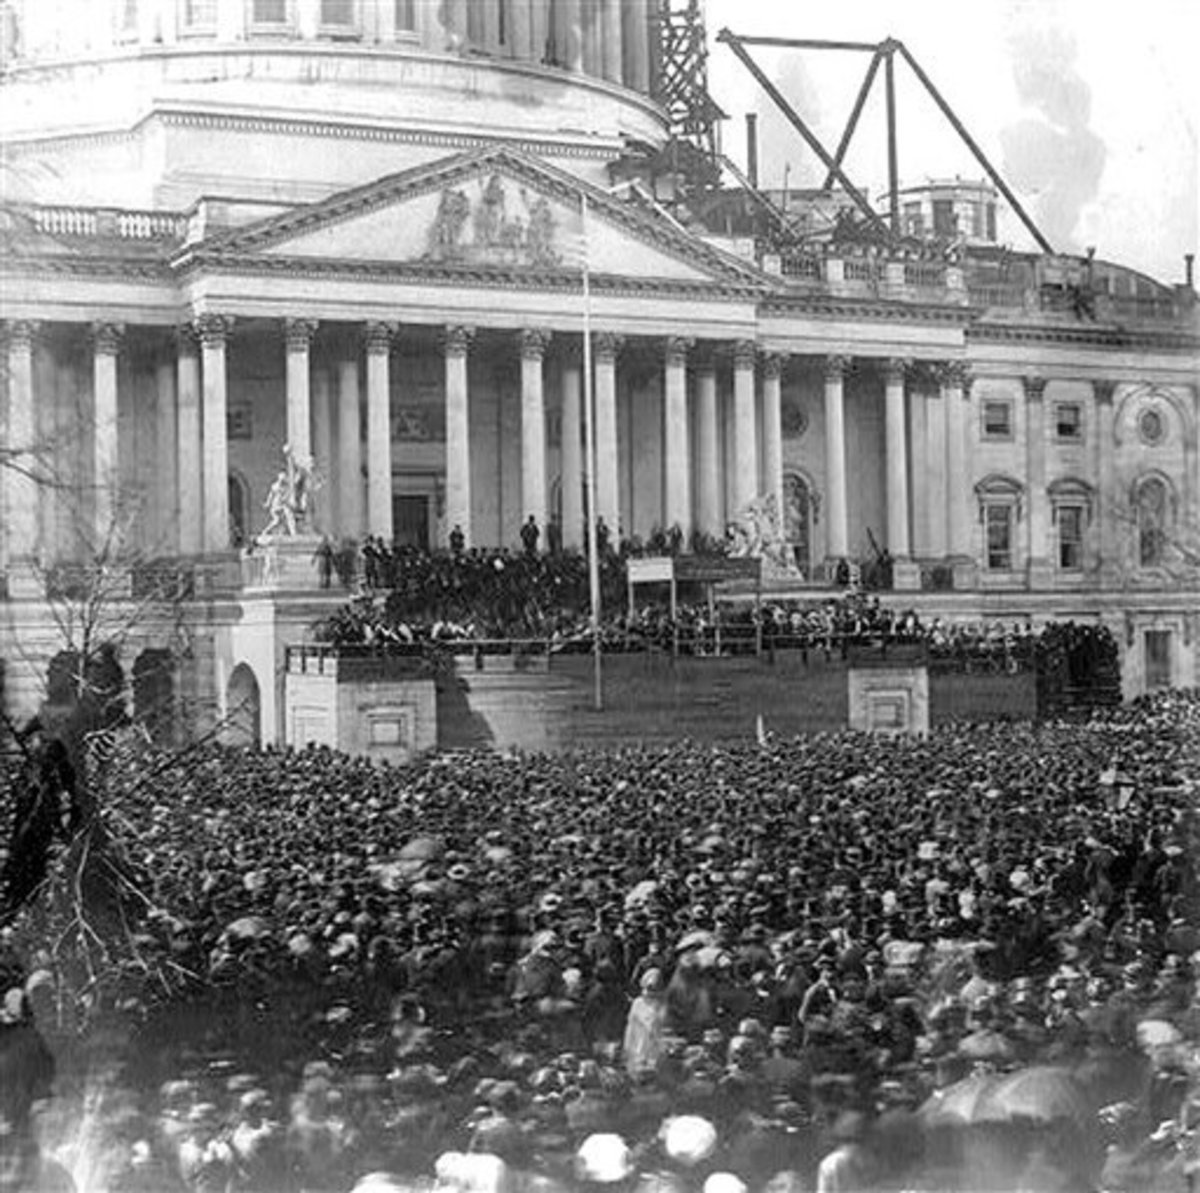 Lincoln's inauguration address, March 6, 1861. Photo taken in front of an incomplete capital building.